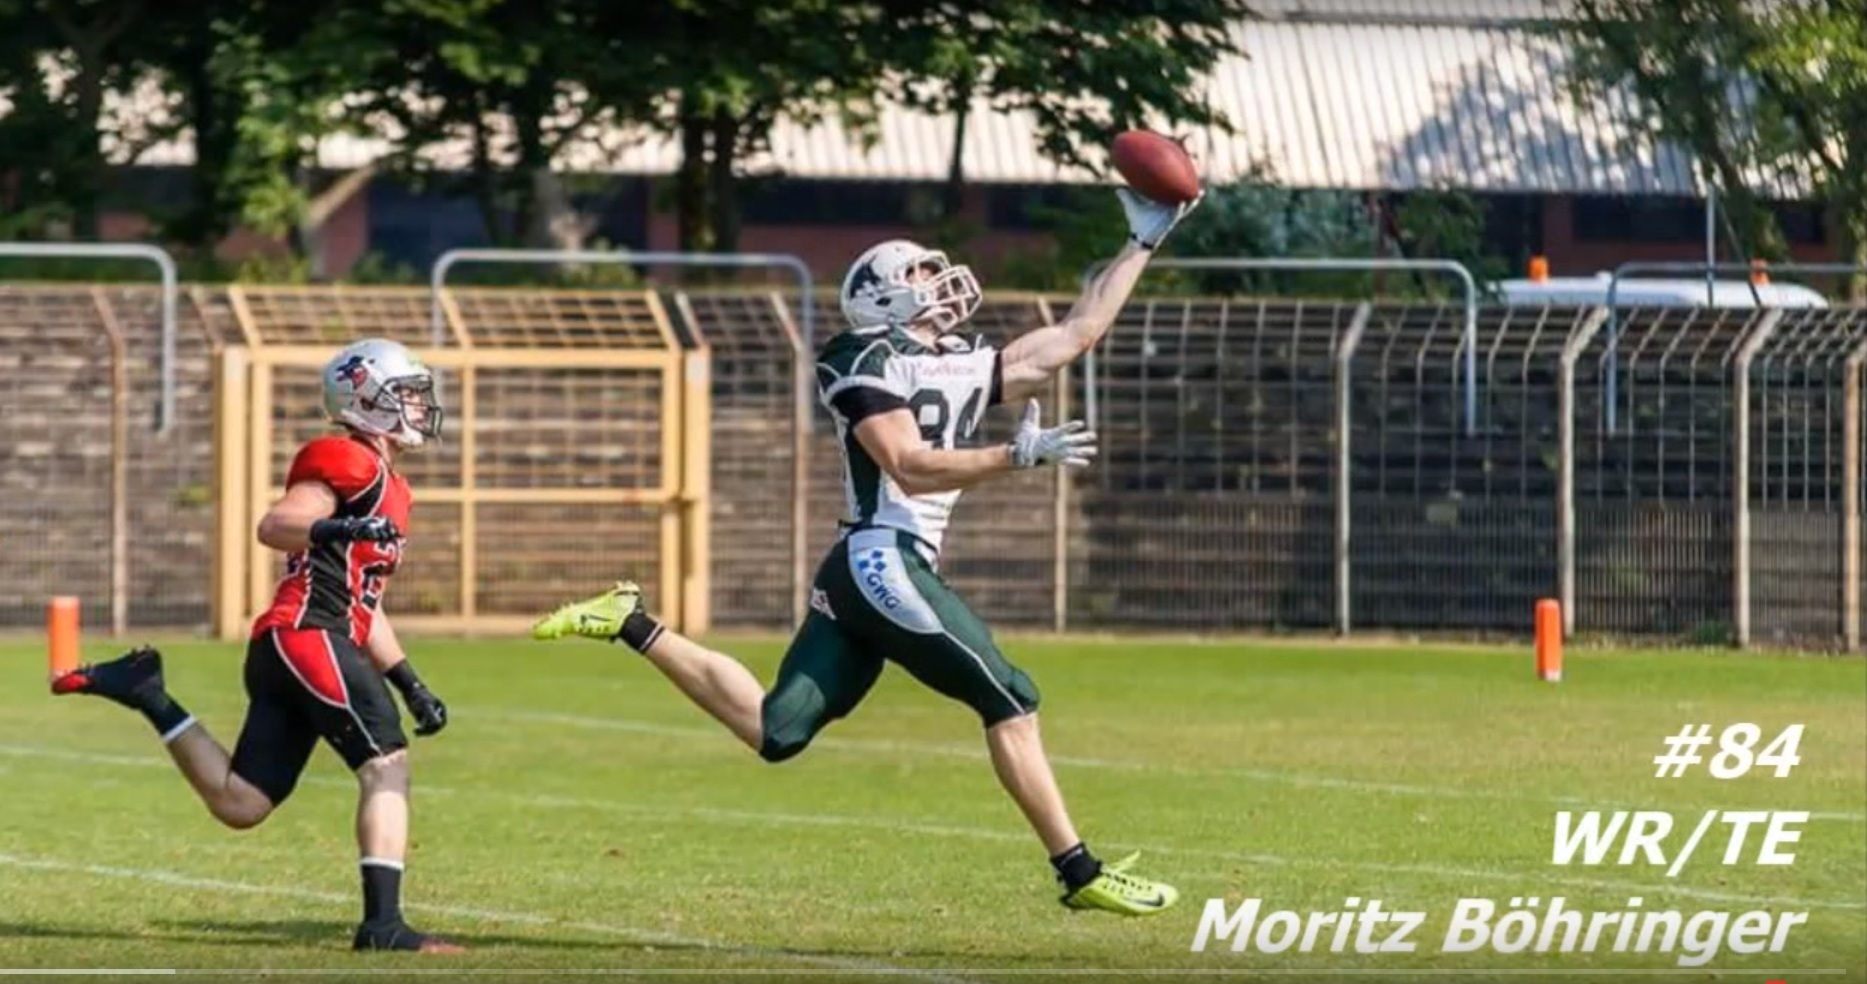 12 Things Worth Learning From WR Moritz Boehringer's Tape